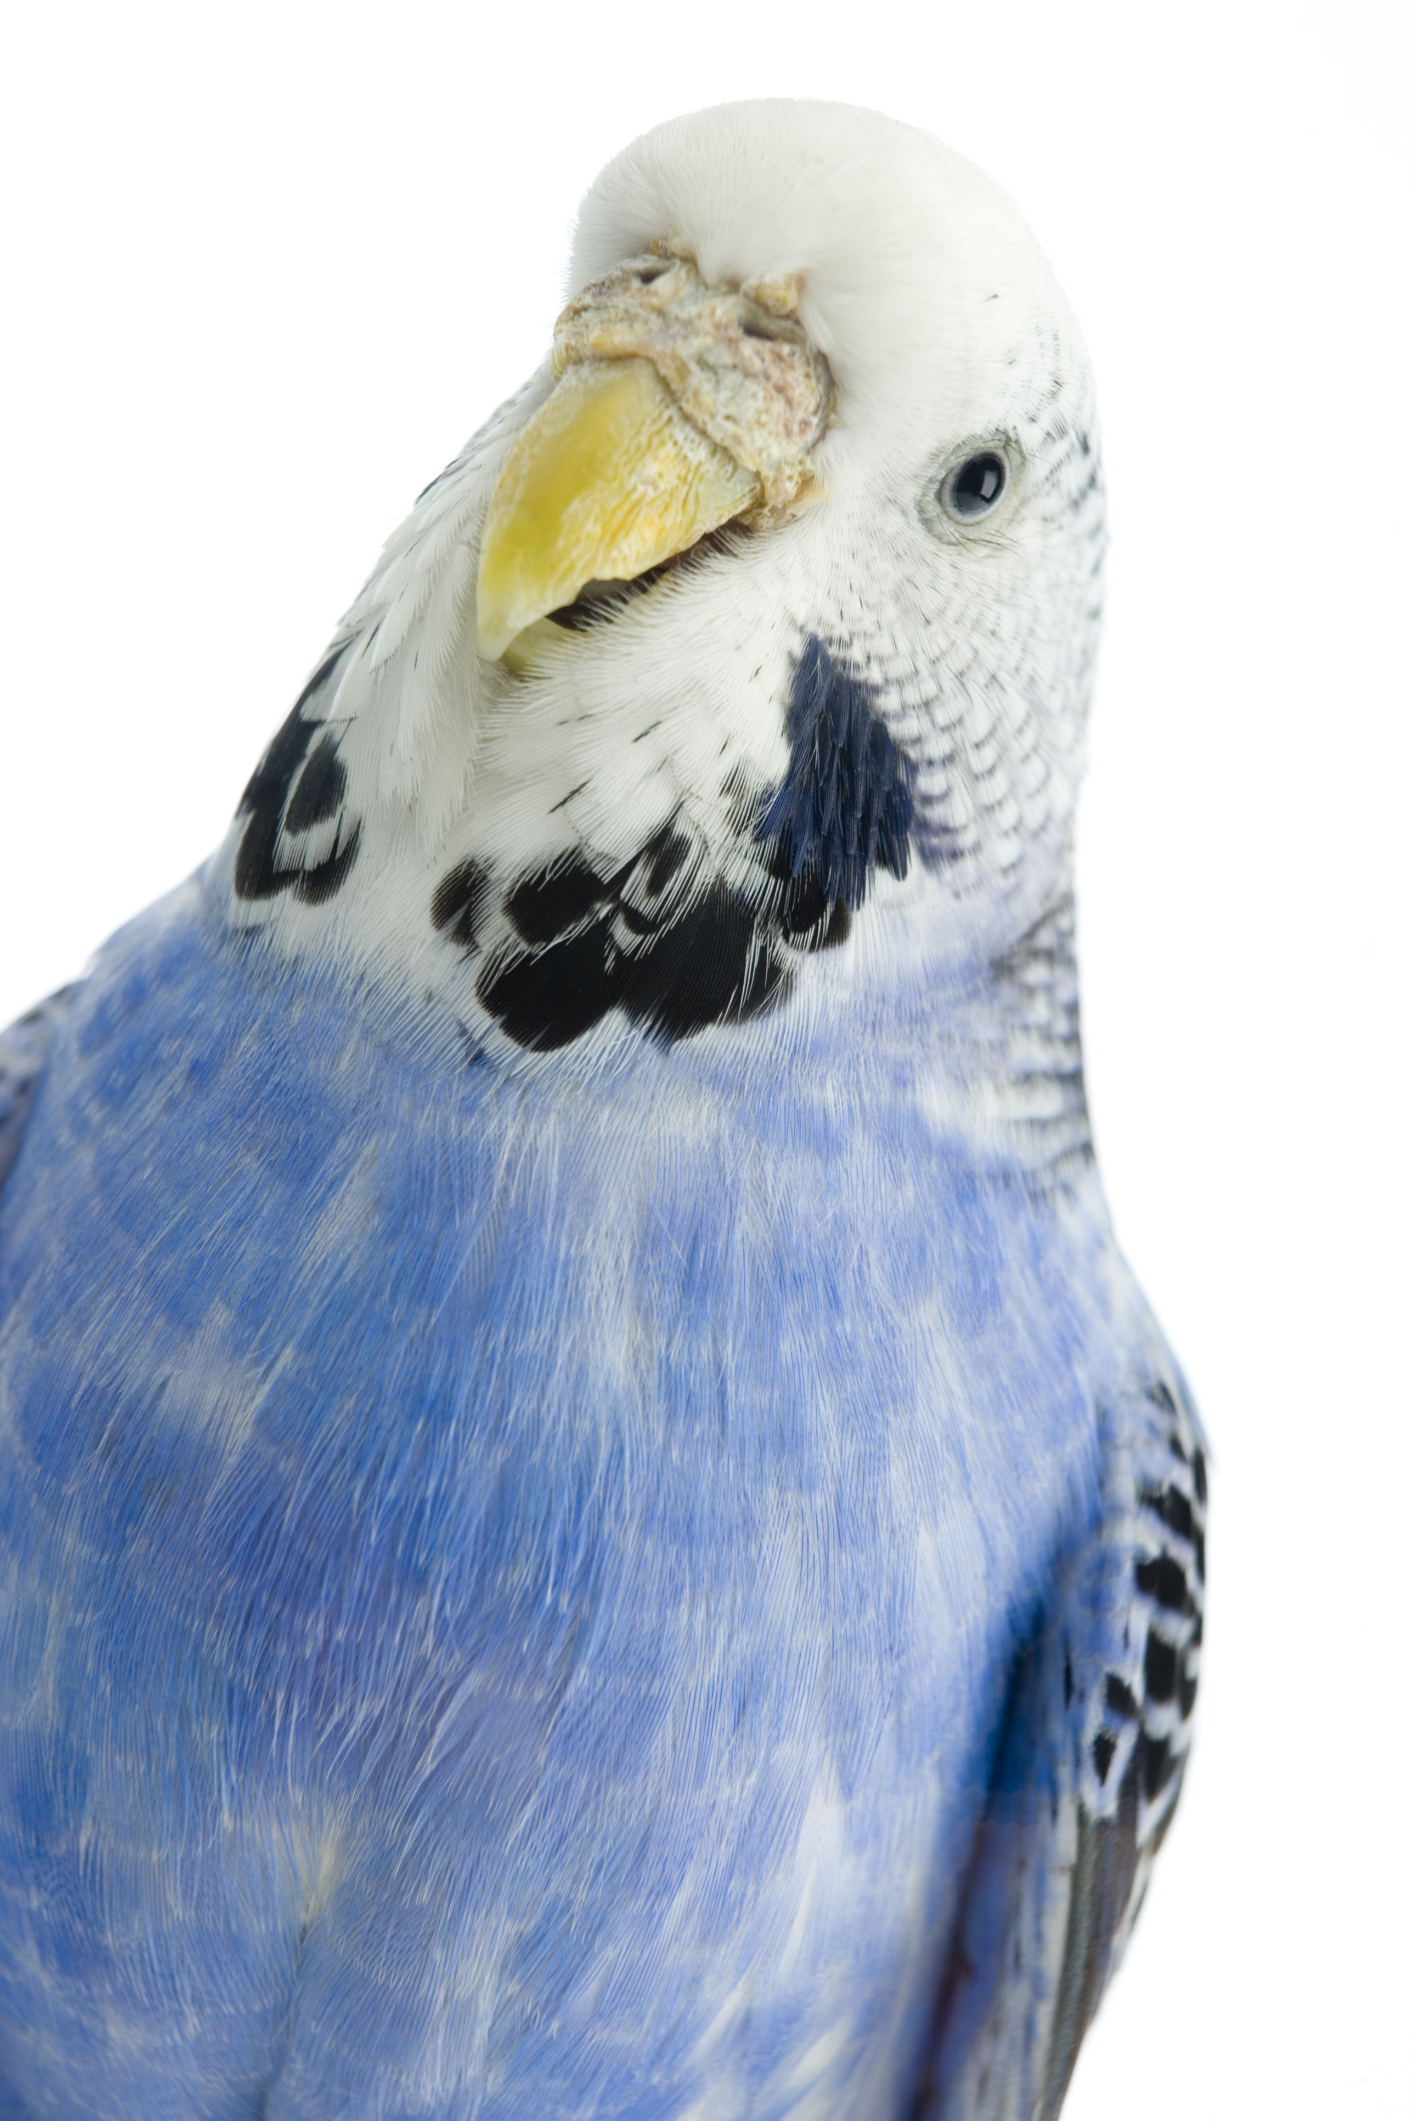 Why Does a Parakeet Twitch? | Animals - mom me